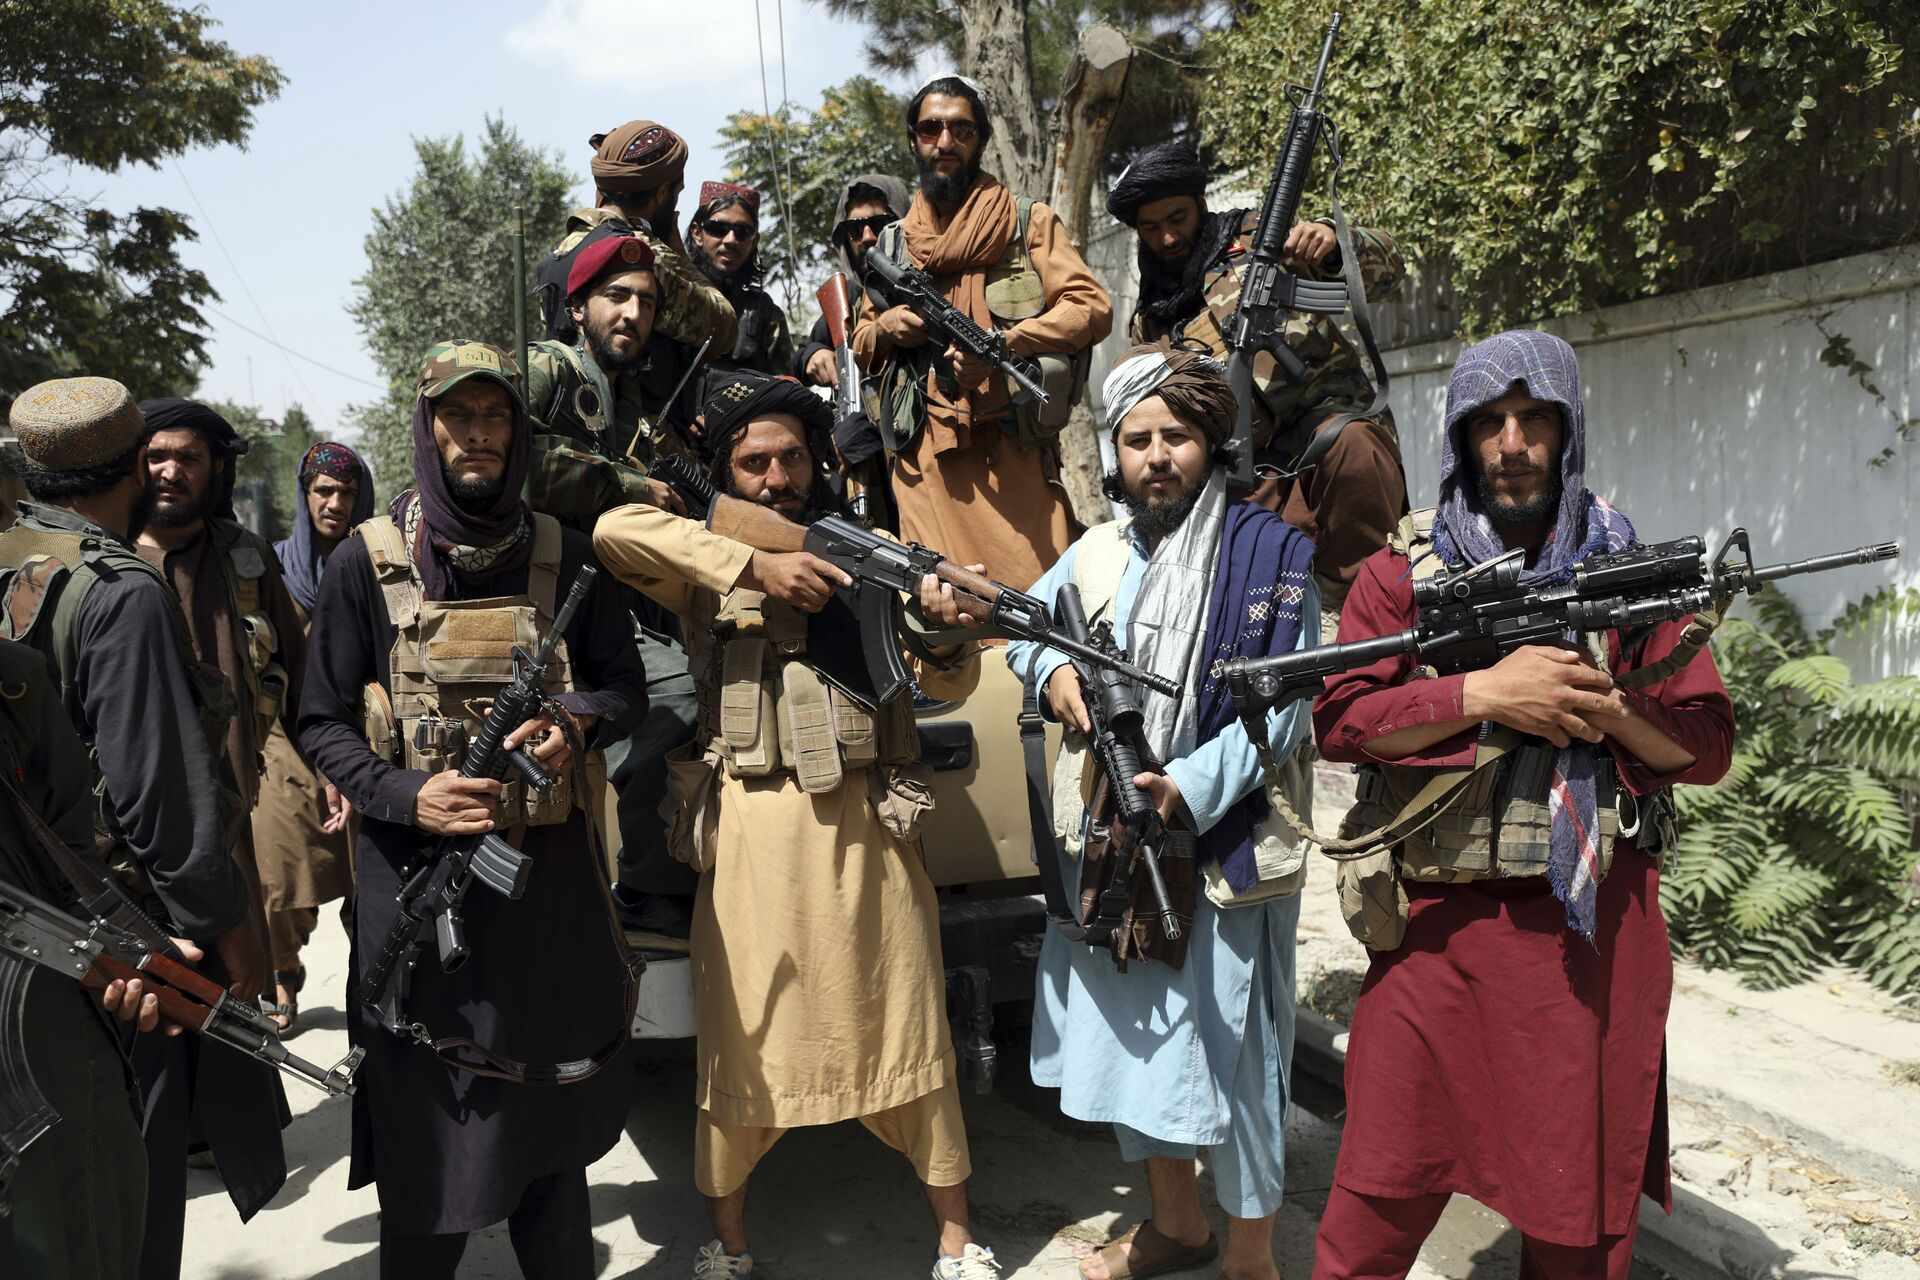 Taliban fighters pose for a photograph in Kabul, Afghanistan, Thursday, Aug. 19, 2021 - Sputnik International, 1920, 07.09.2021